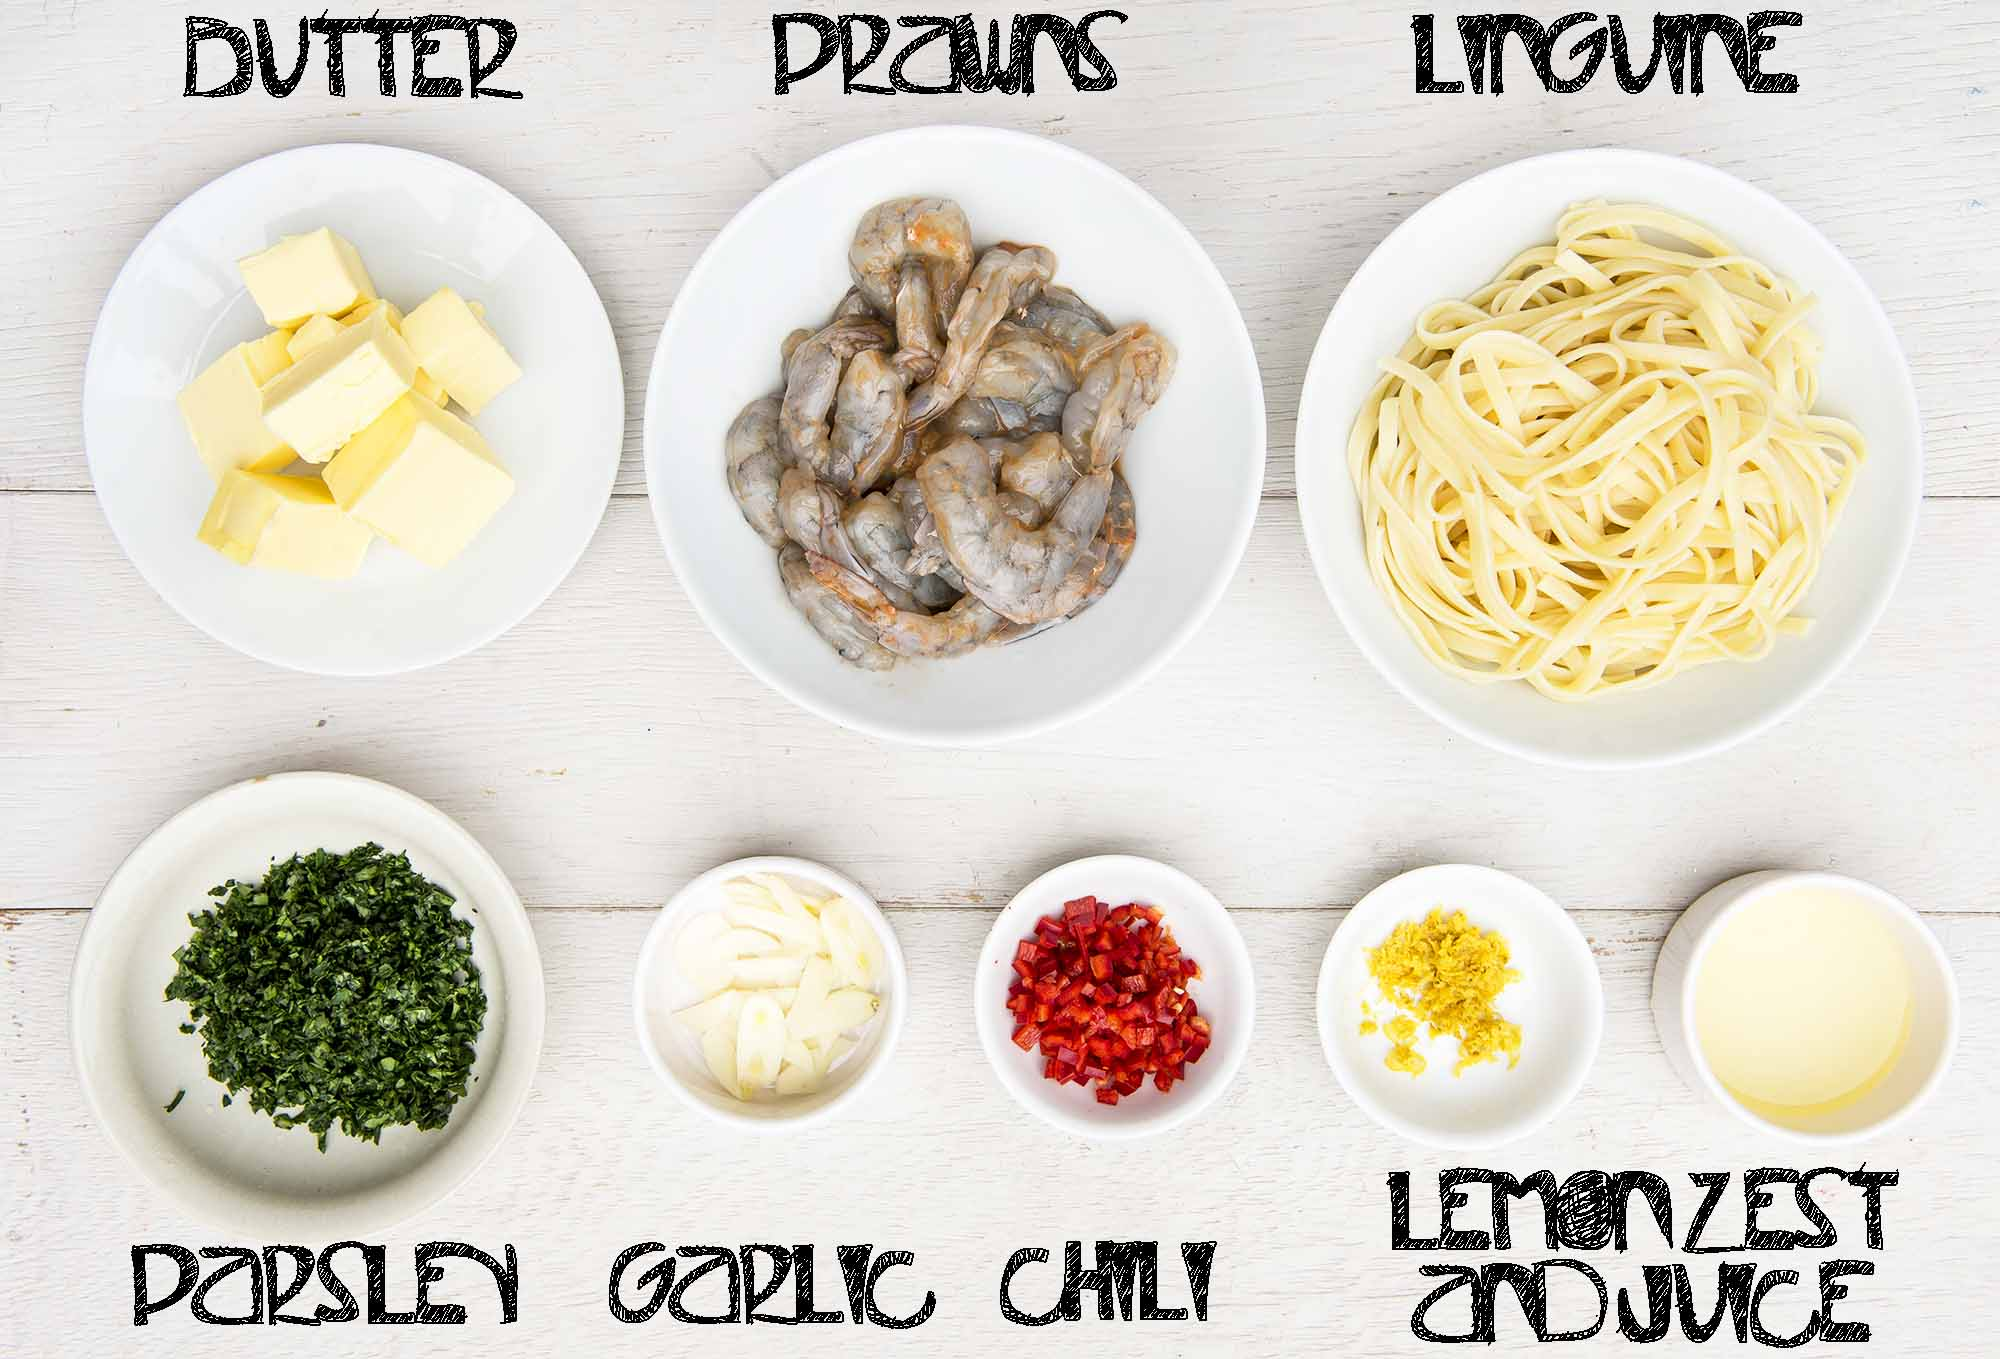 prawn and lemon butter pasta ingredients